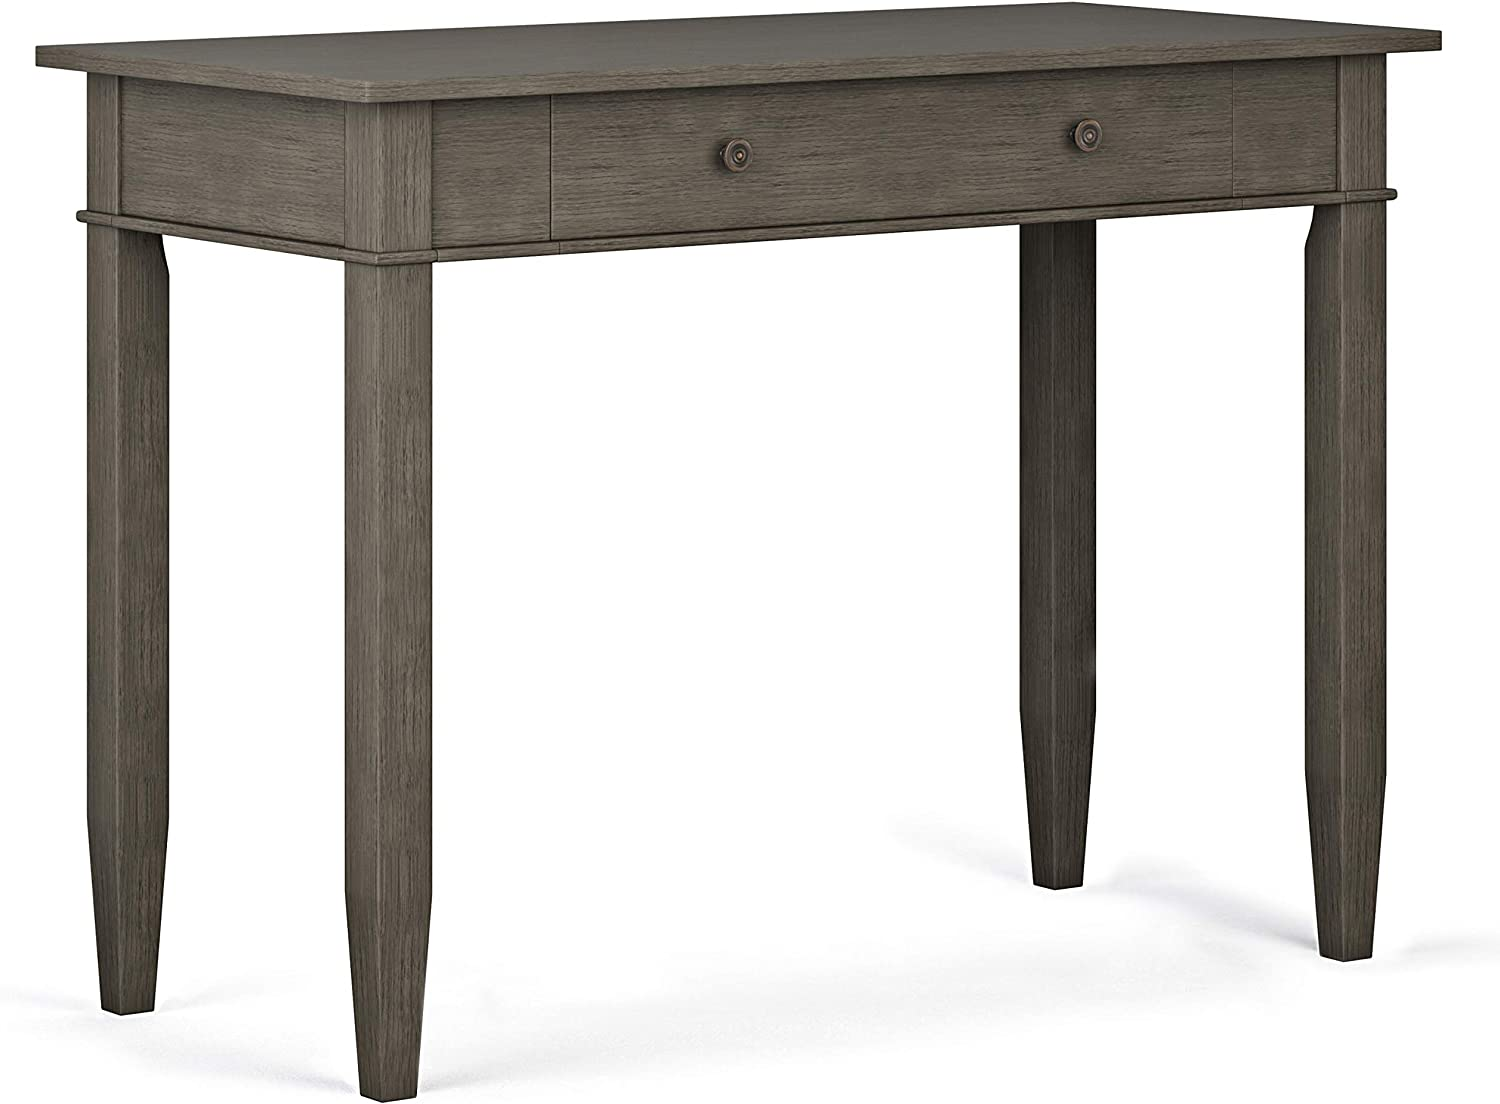 SIMPLIHOME Carlton SOLID WOOD Contemporary Modern 42 inch Wide Home Office Desk, Writing Table, Workstation, Study Table Furniture in Farmhouse Grey with 1 Drawer